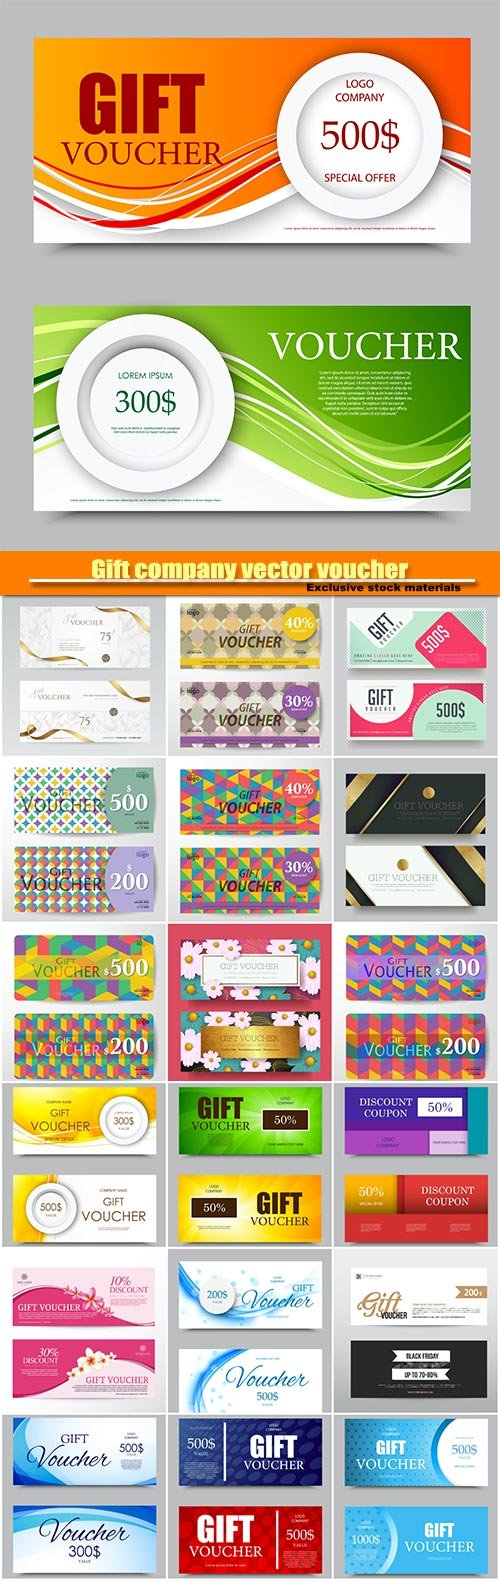 Gift company vector voucher template